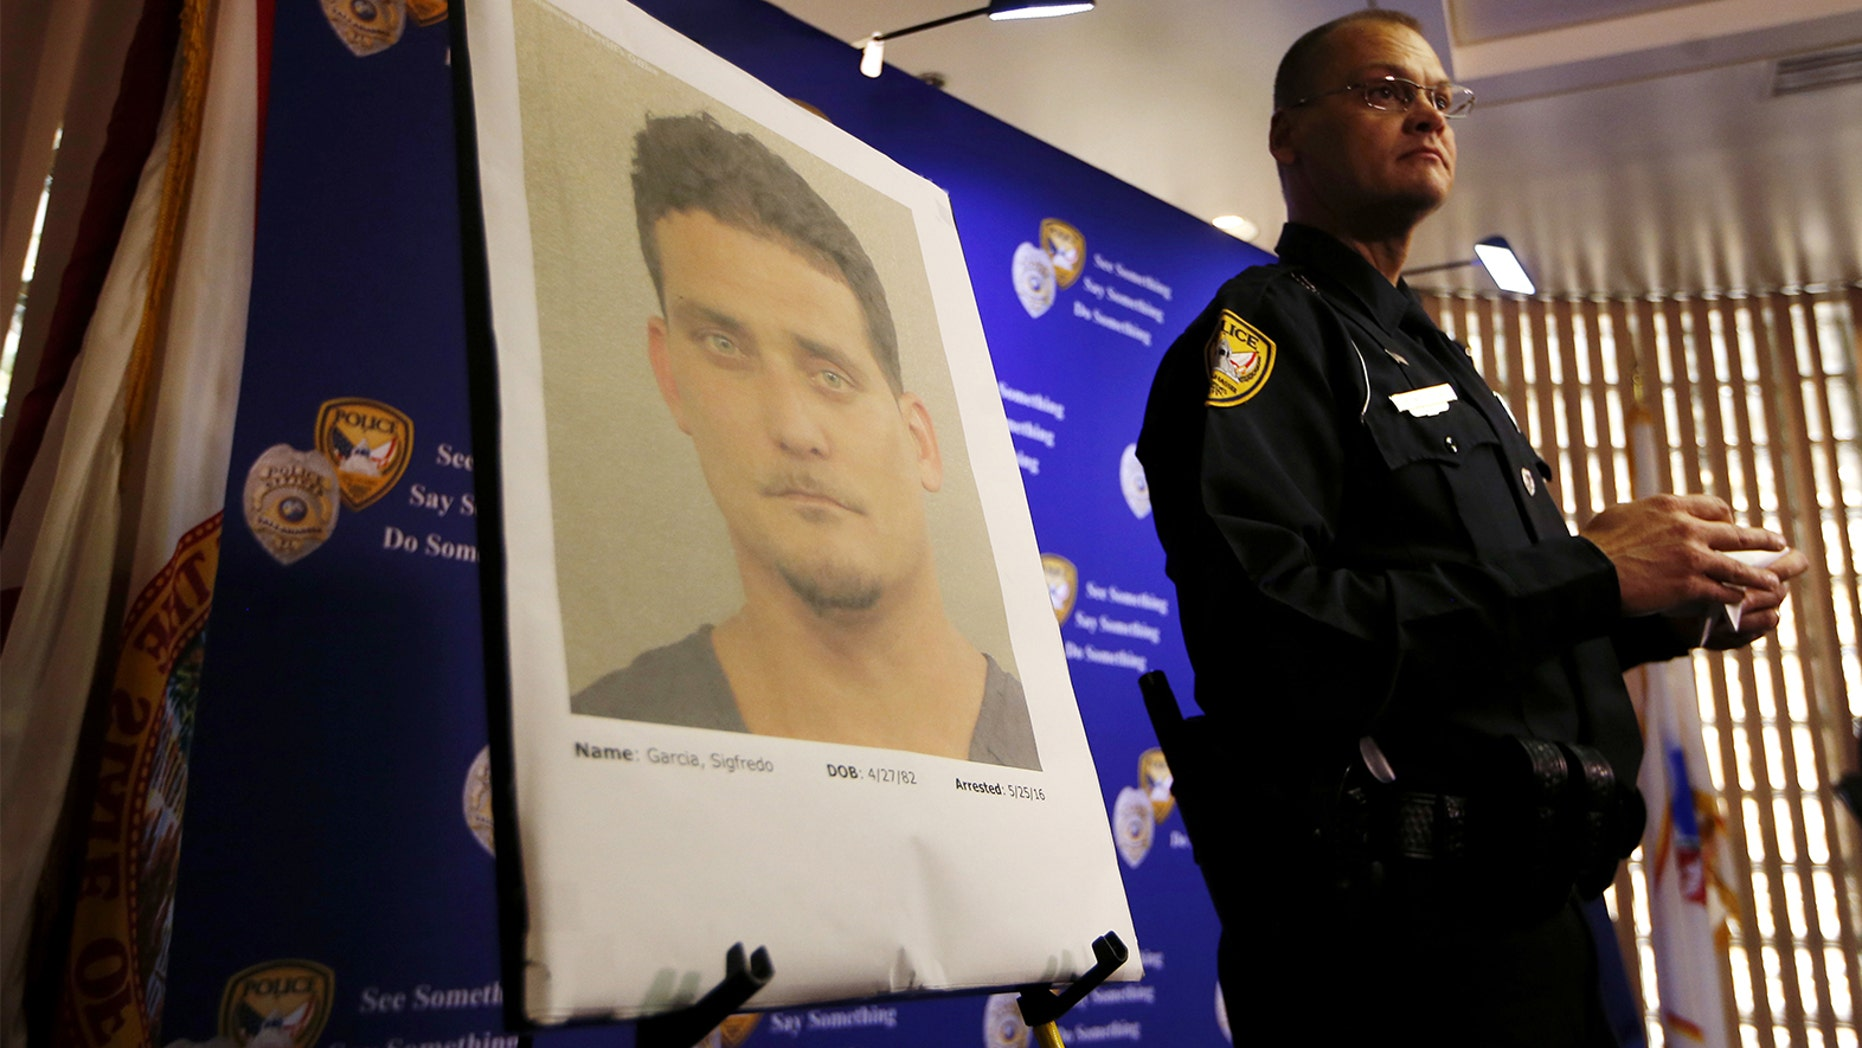 Tallahassee Police Department Public information officer David Northway reveals an image of Sigfredo Garcia, 34, during a press conference in Tallahassee, Fla., Thursday, May 26, 2016. Garcia is wanted for the murder of Florida State University law professor Dan Markel. Markel was killed in his Tallahassee home in July 2014. (Joe Rondone/Tallahassee Democrat via AP)